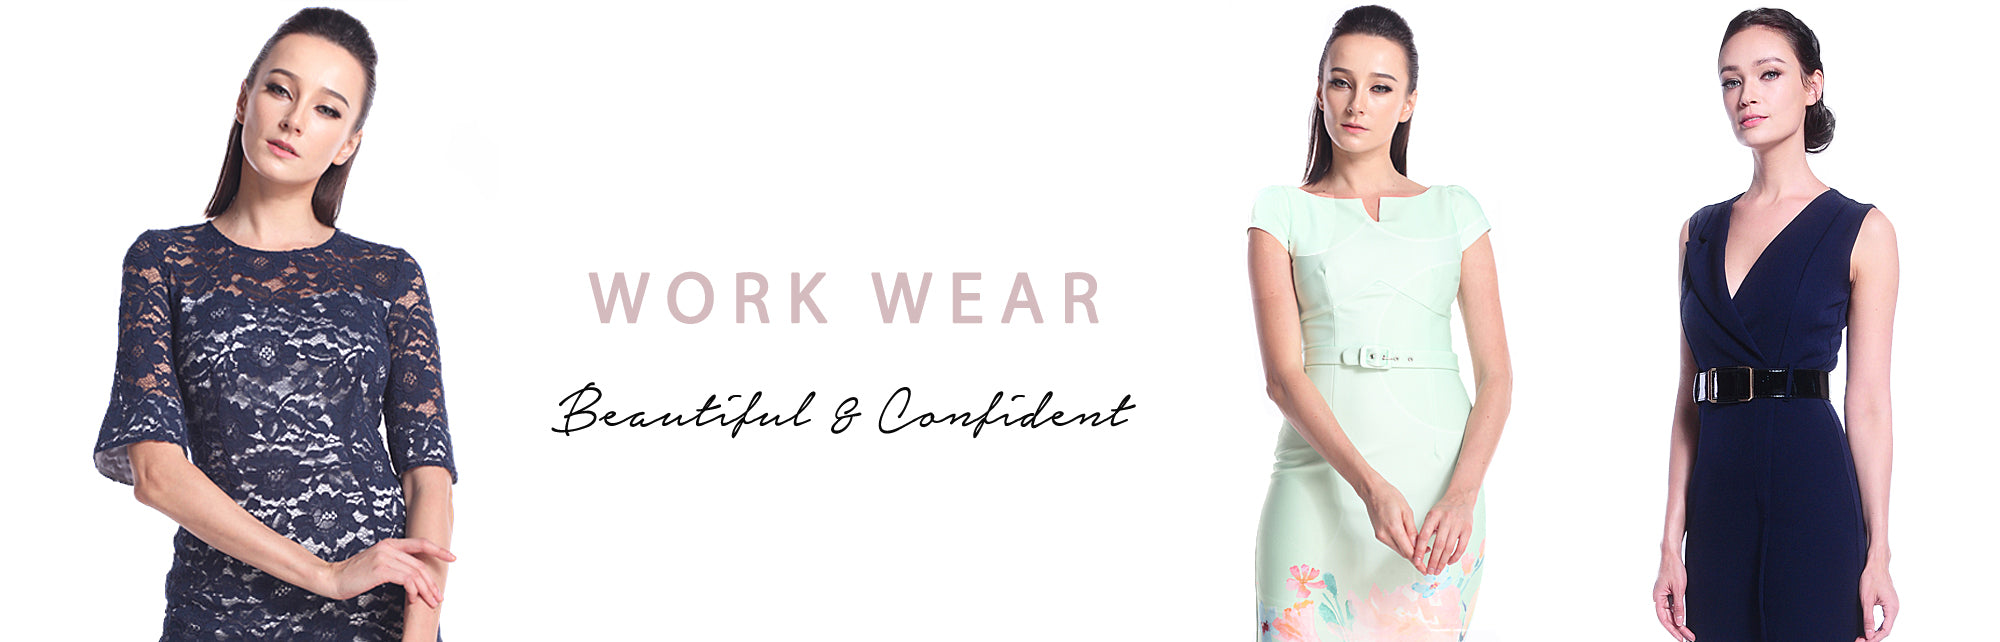 Workwear Collection Banner